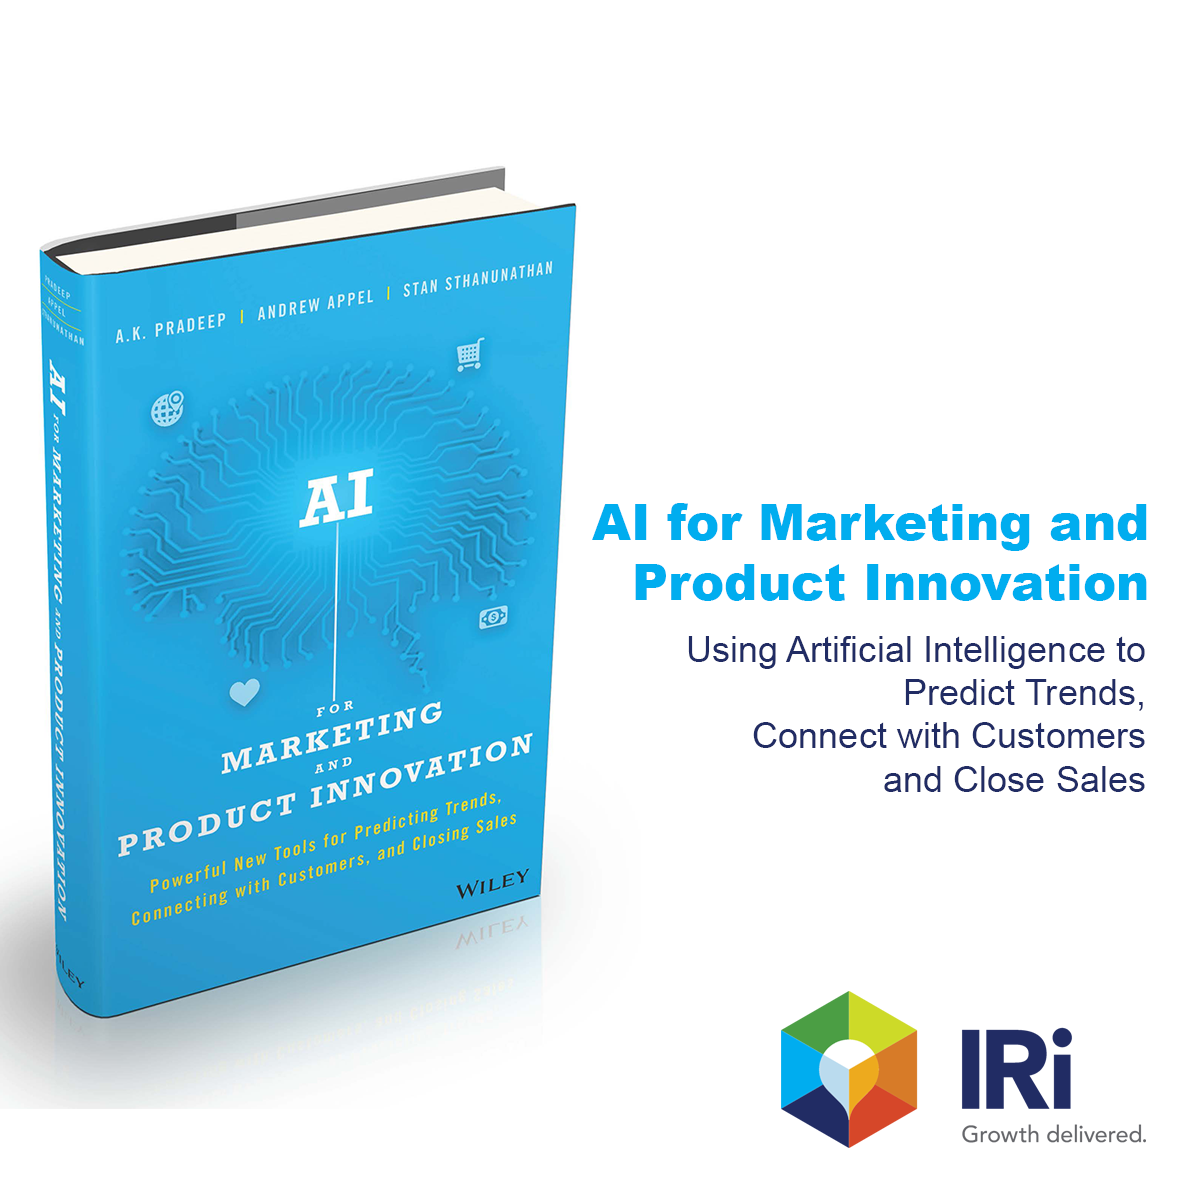 Read about it - AI for Marketing and Product Innovation by - A. K. Pradeep, Andrew Appel, and Stan Sthanunathan